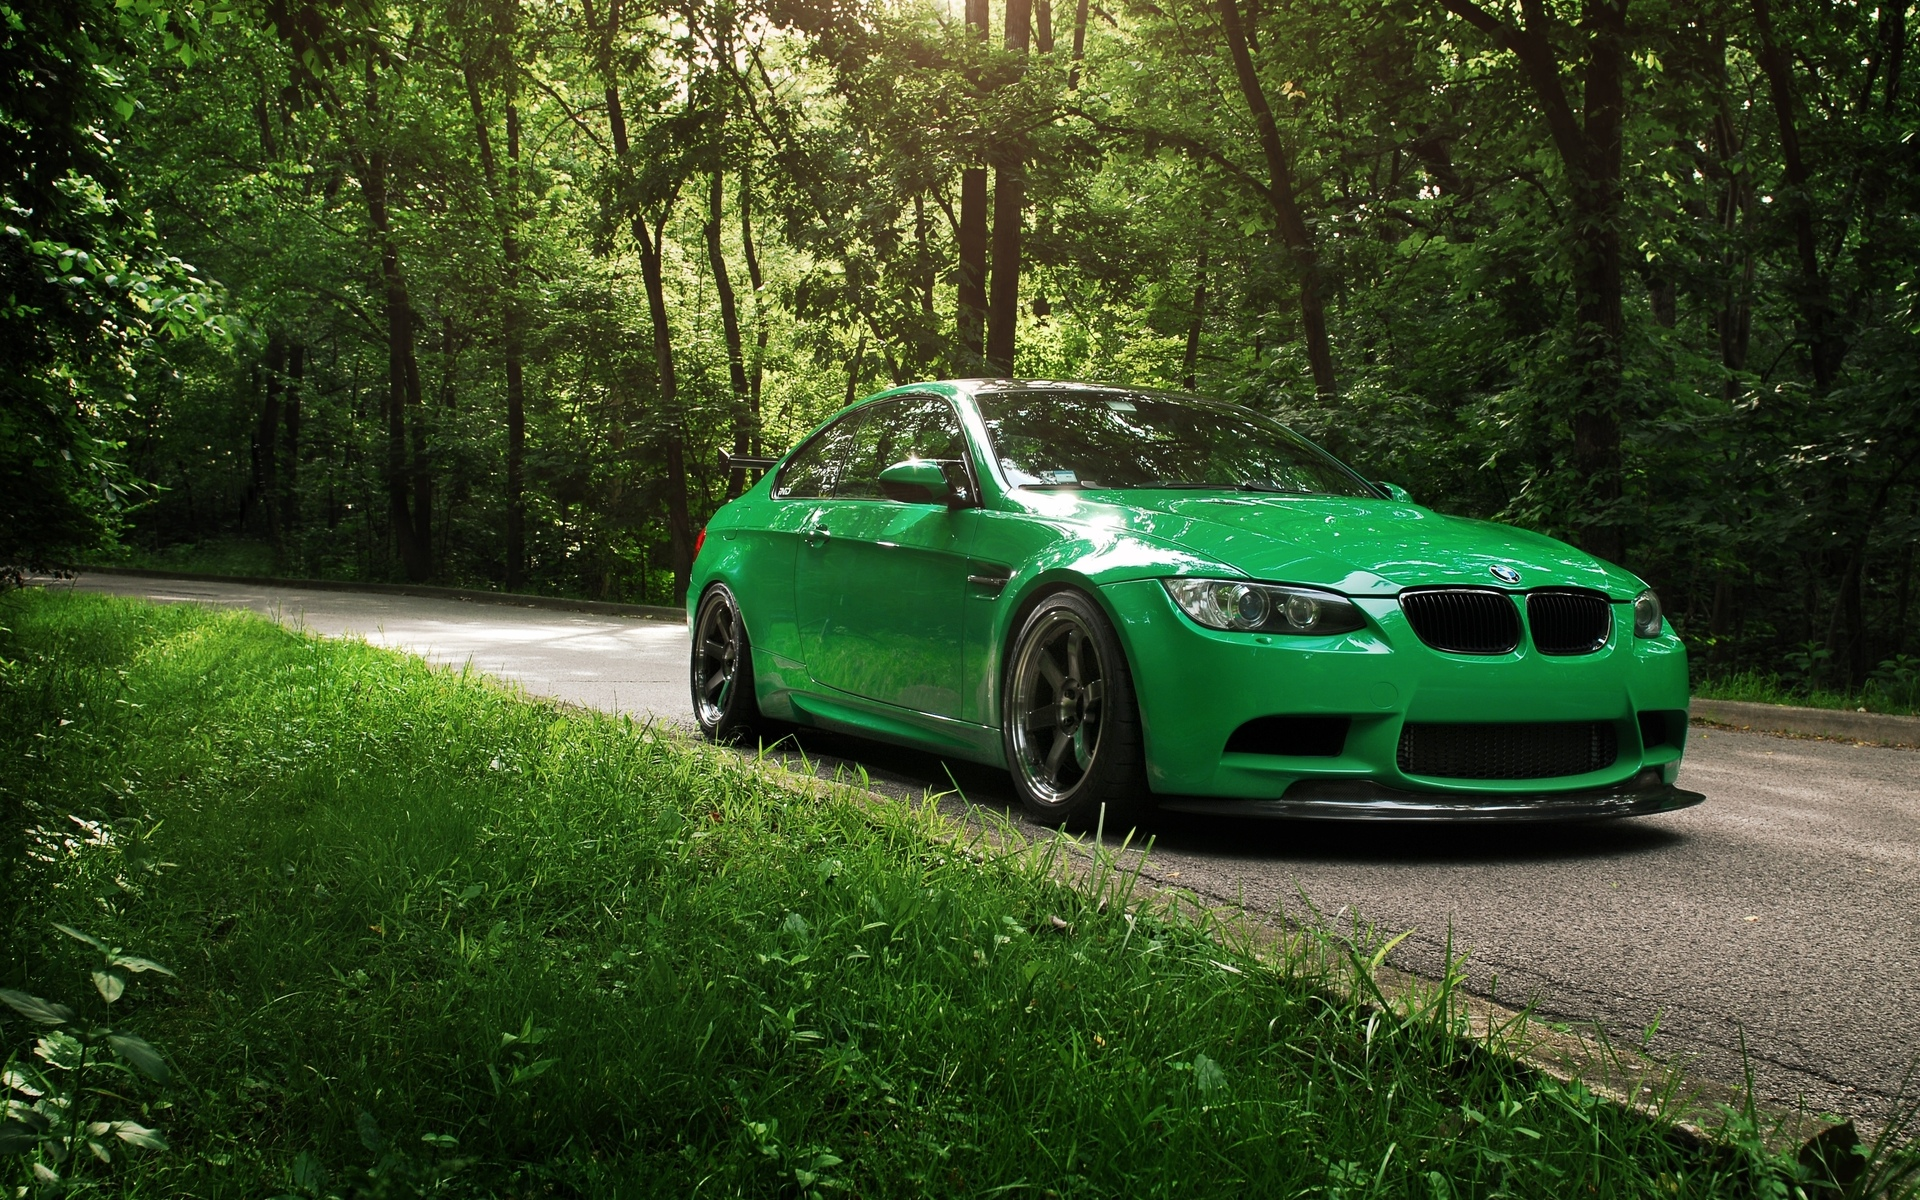 Bmw Vehicles Cars Auto Tuning Wheels Roads Trees Forest